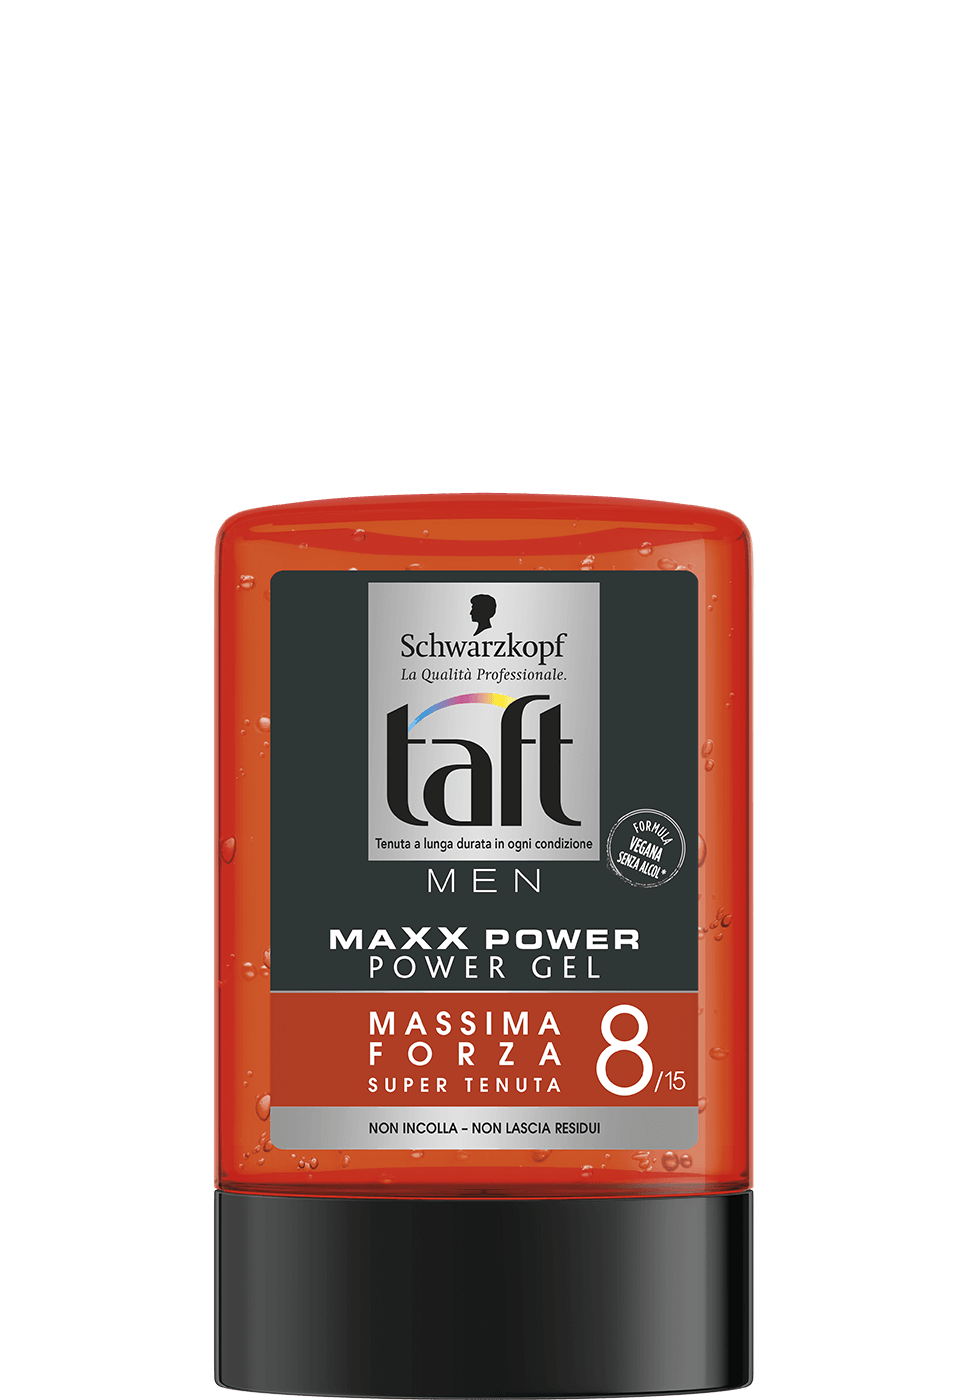 SKP_Taft_970x1400_2020_MAXX-POWER